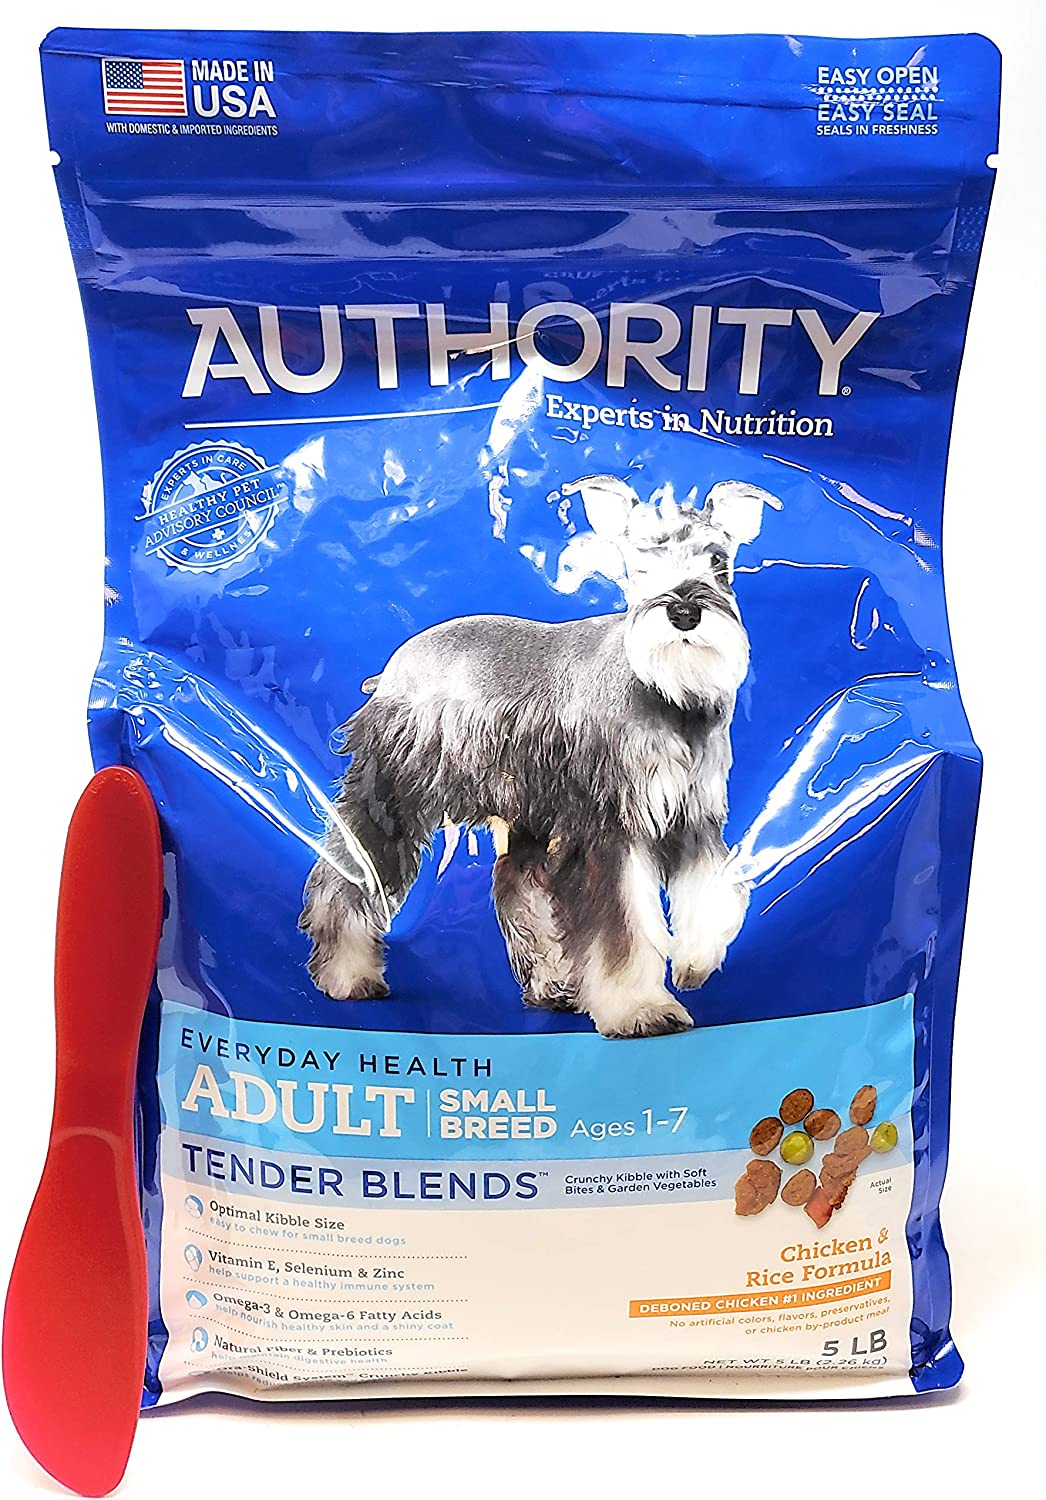 Authority Adult Small Breed Tender Blends Dry Dog Food (Chicken and Rice) 5lbs and Especiales Cosas Mixing Spatula